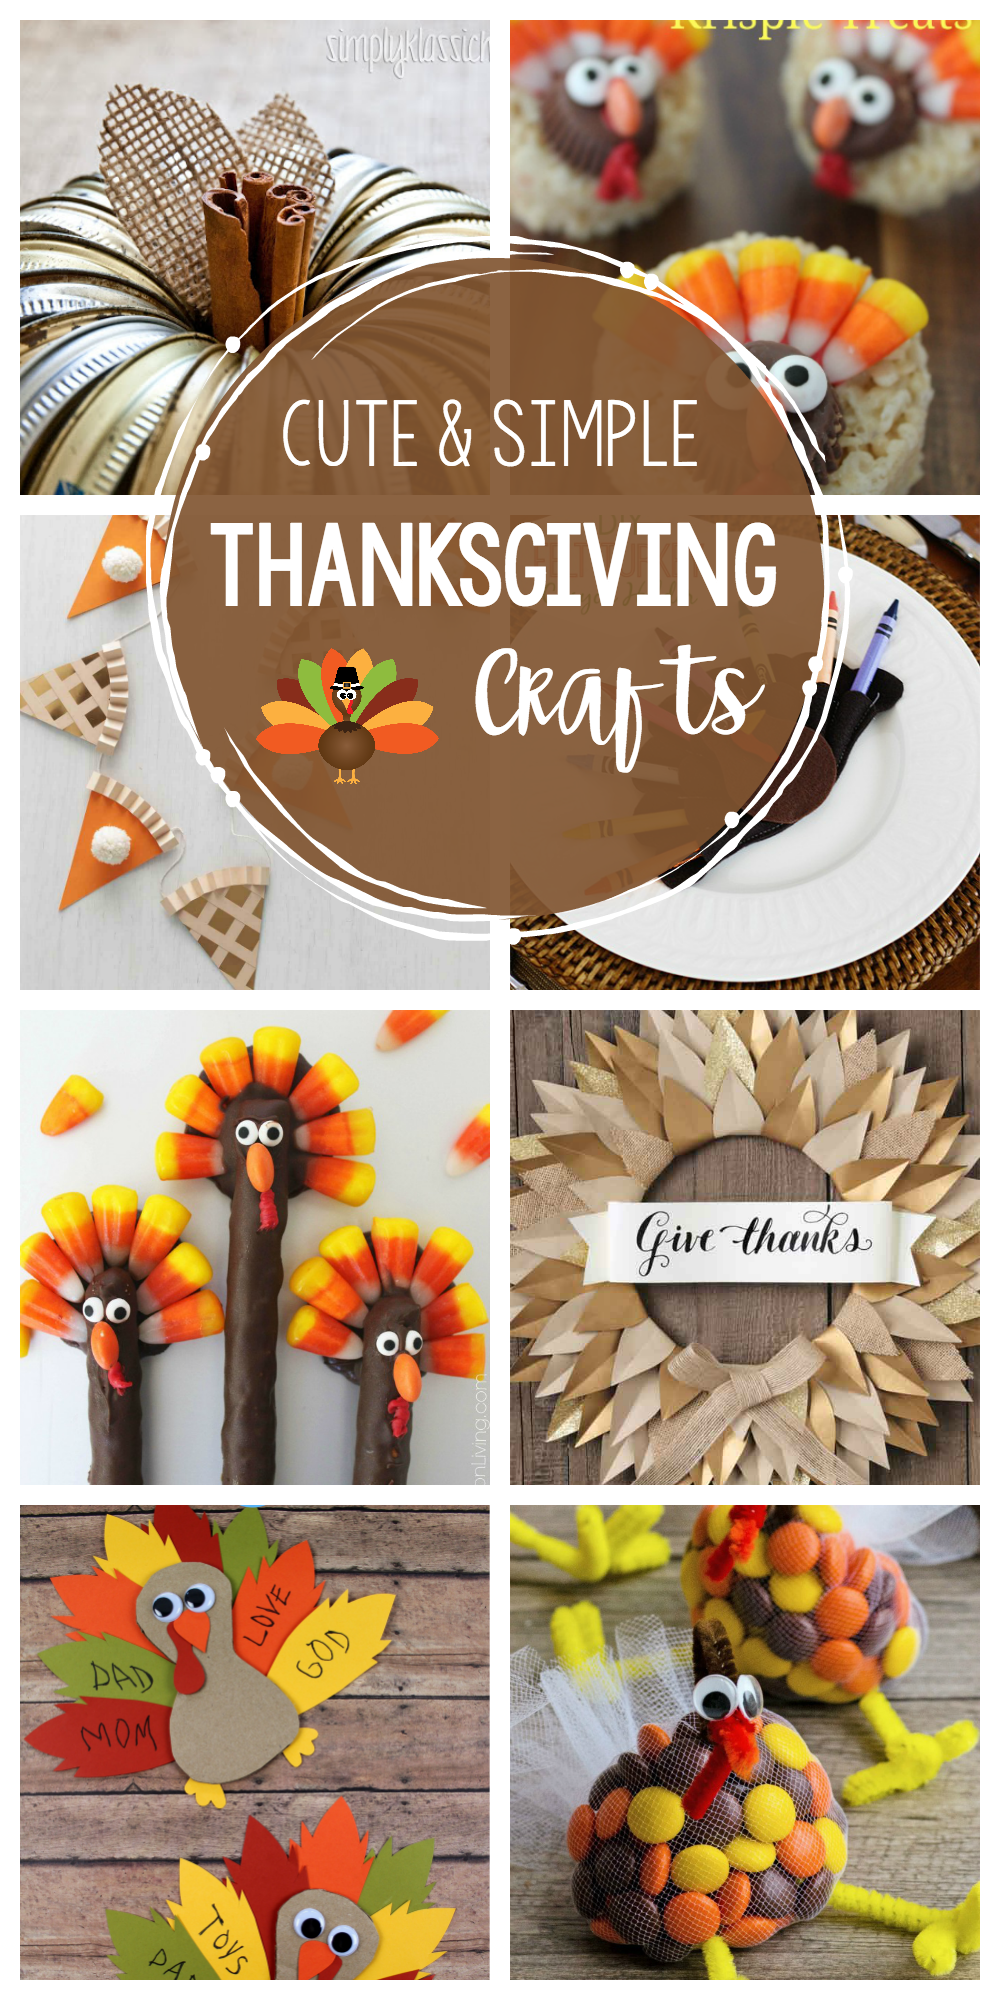 20+ Cute and Simple Thanksgiving Crafts to Try this Year! Need something fun to do while the turkey cooks? These fun Thanksgiving Craft Ideas are great for kids and adults alike. #Thanksgiving #thanksgivingcrafts #craftideas